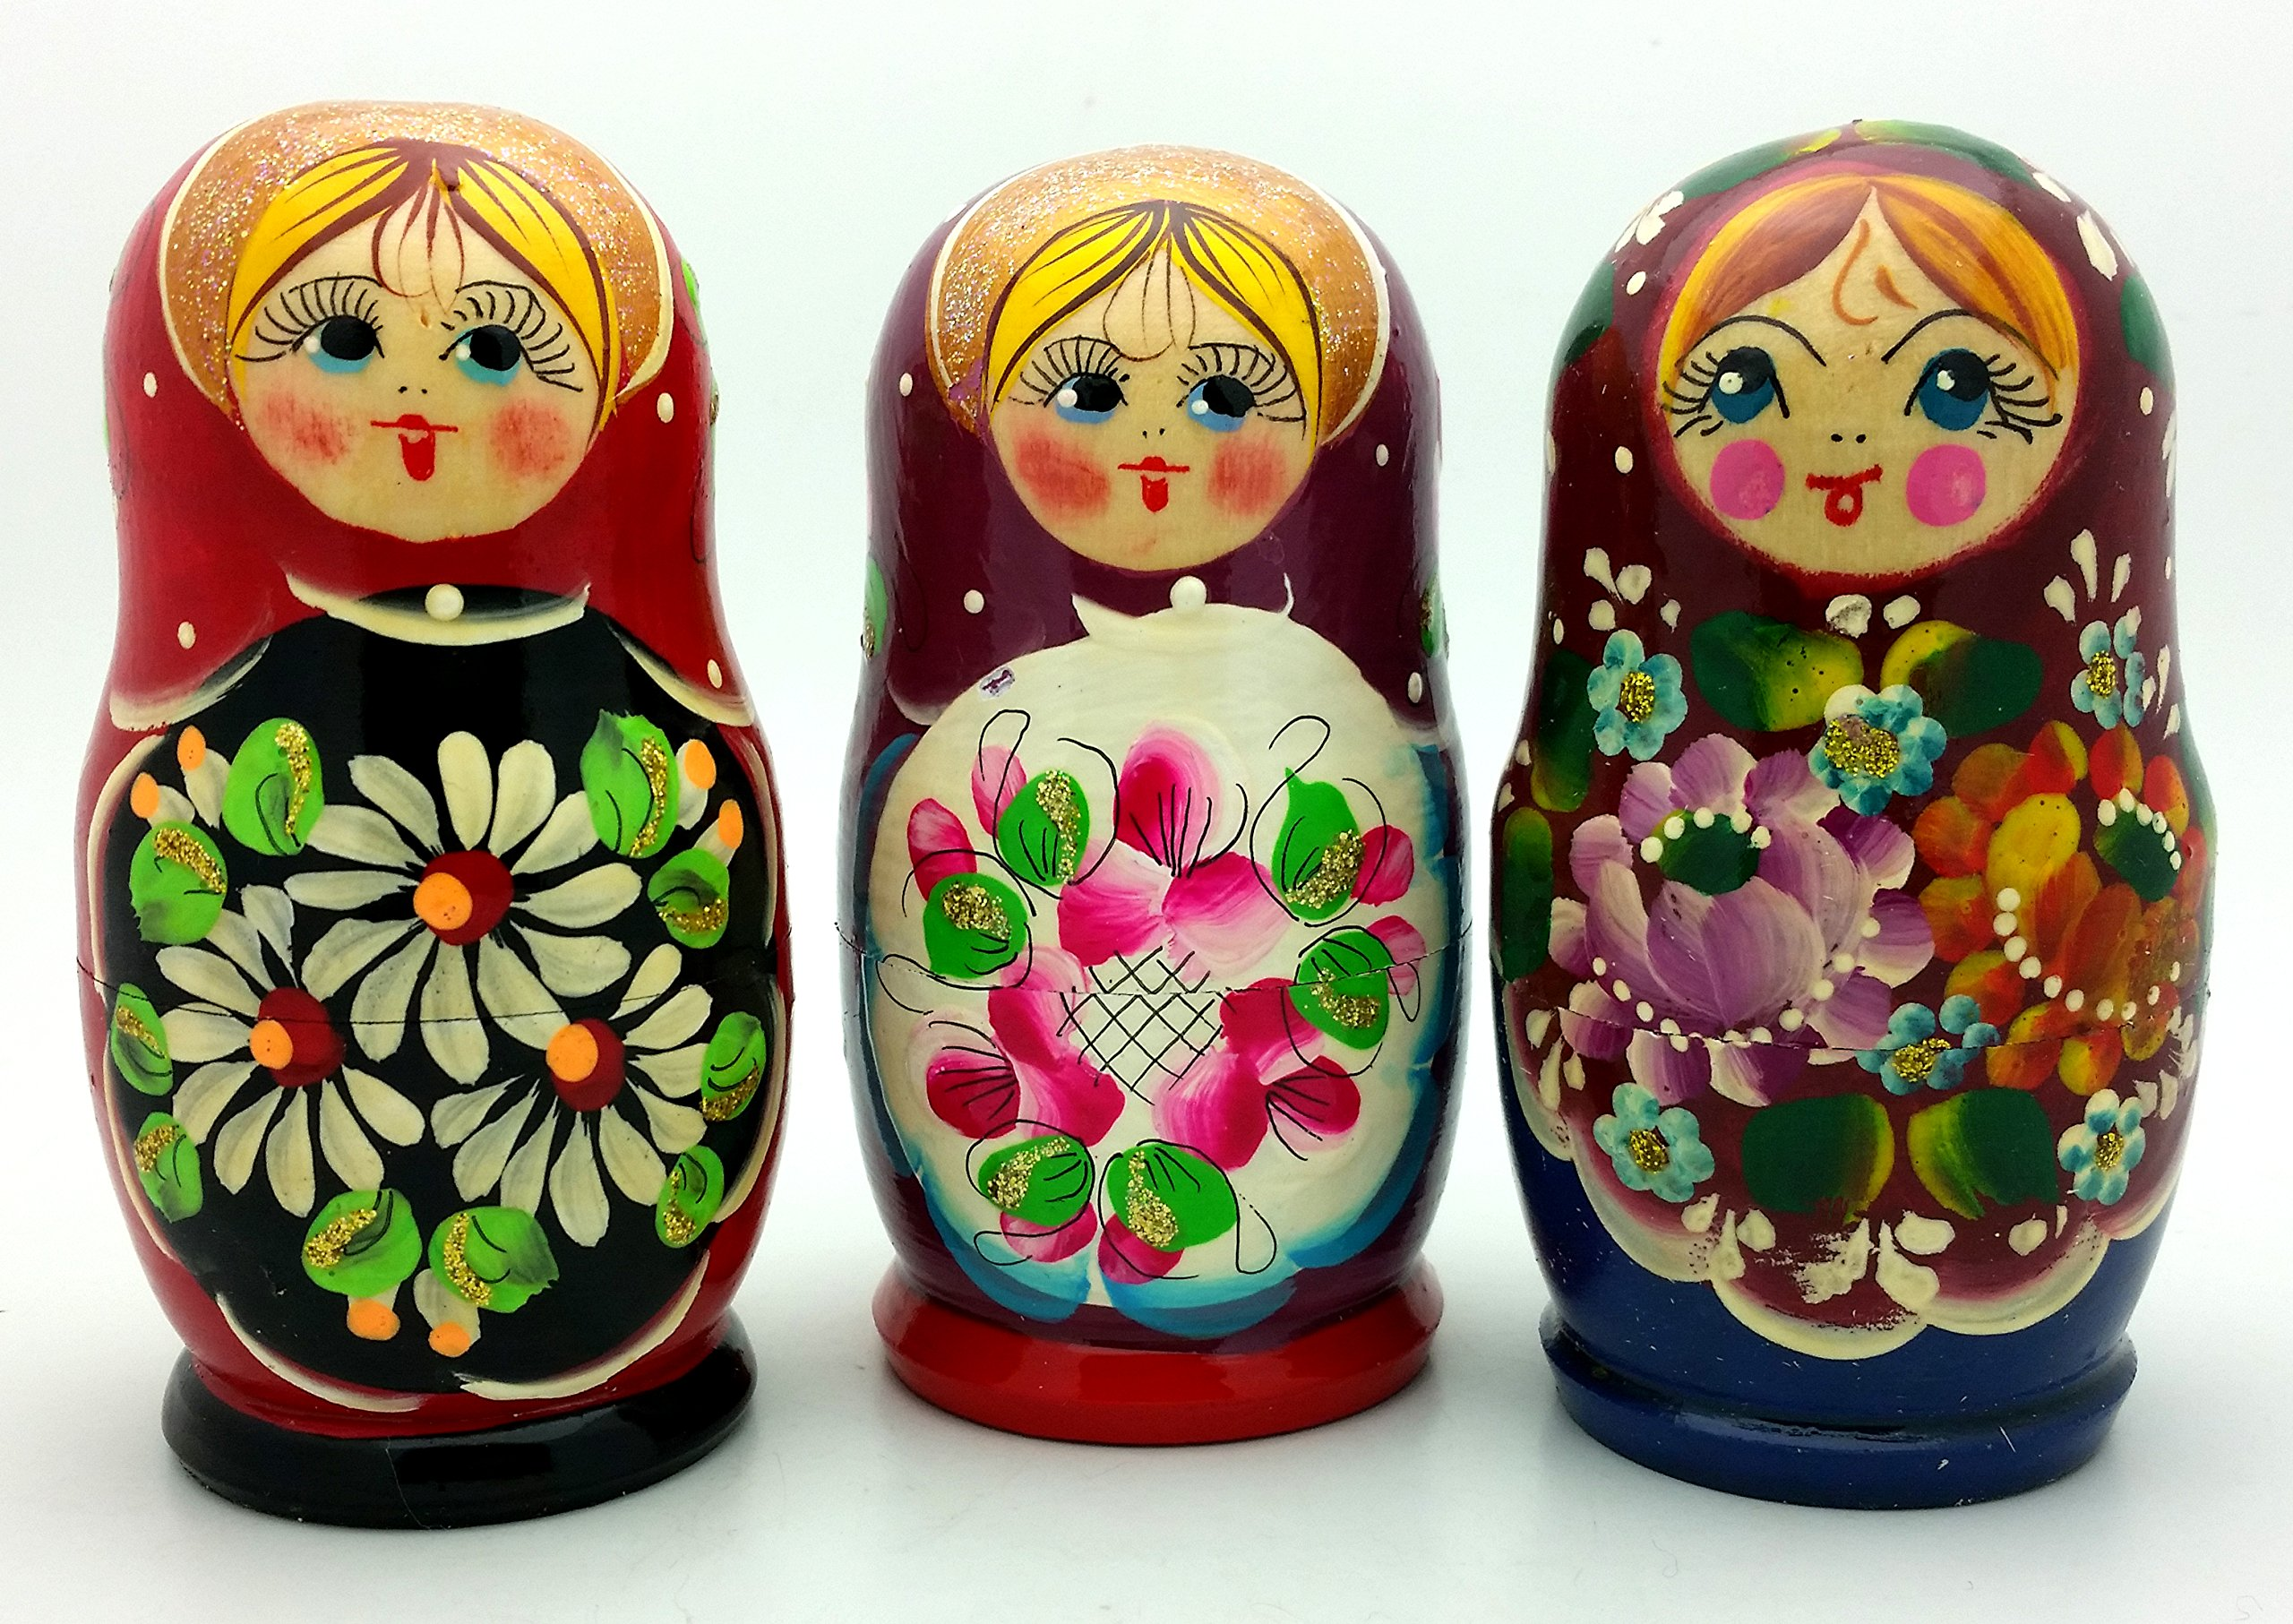 Lot of 3 Sets Russian Traditional Nesting Stacking Wooden Dolls Each Matryoshka Babushka set contains 5 dolls by BuyRussianGifts (Image #2)